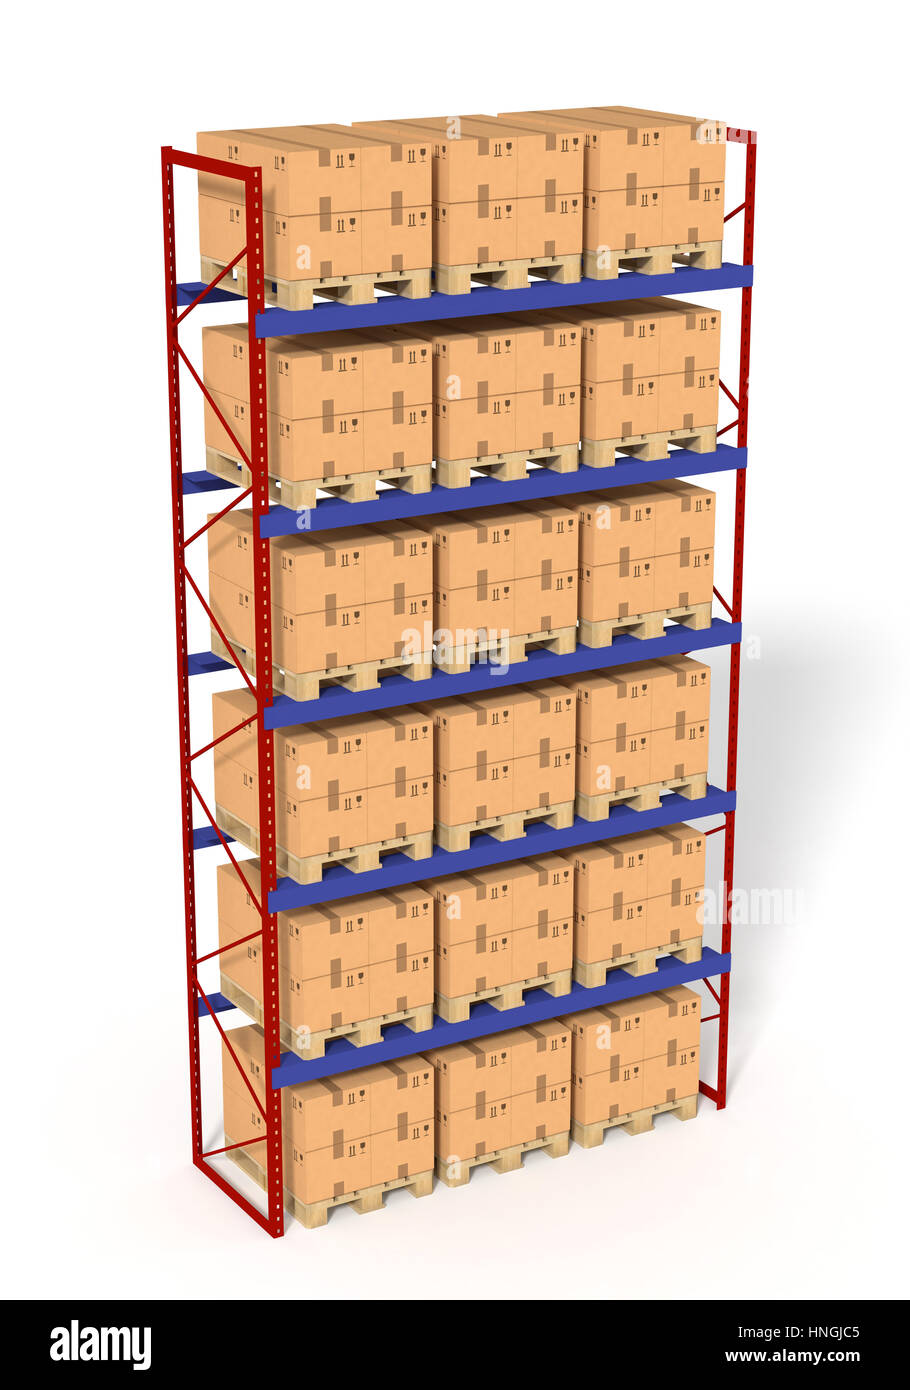 Warehouse shelves rack filled with brown boxes. Isolated on white background. Retail, logistics, delivery and storage concept. Generic containers rack Stock Photo